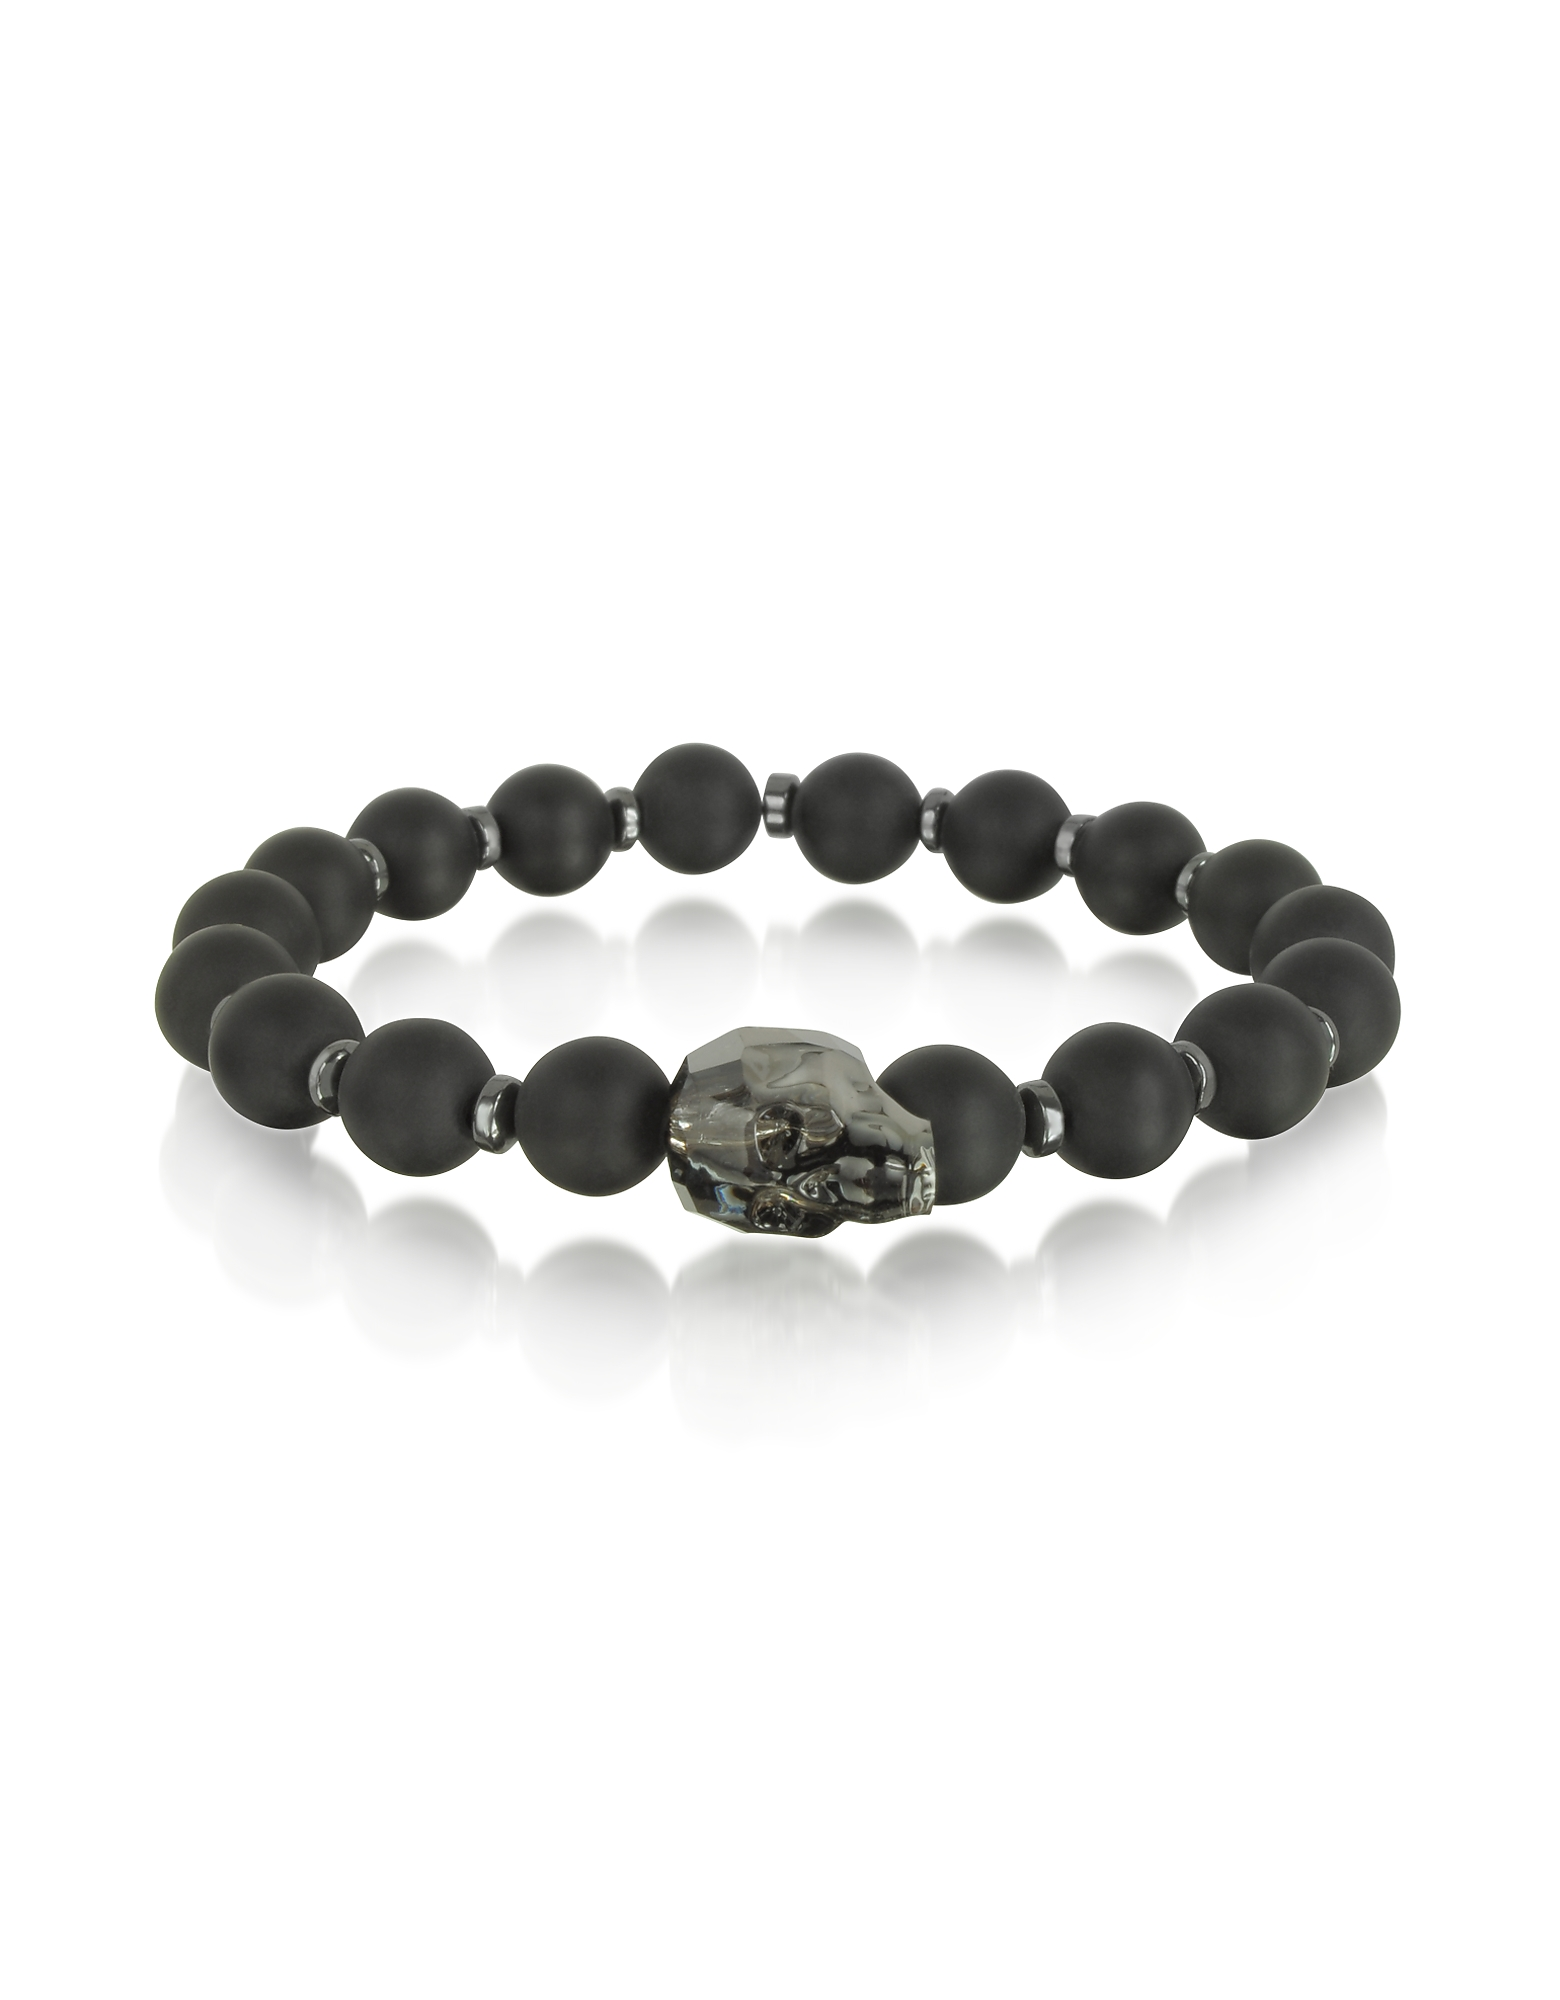 Blackbourne Men's Bracelets, Black Agate Small Stone Men's Bracelet w/Gunmetal Swarovski Crystal Sku